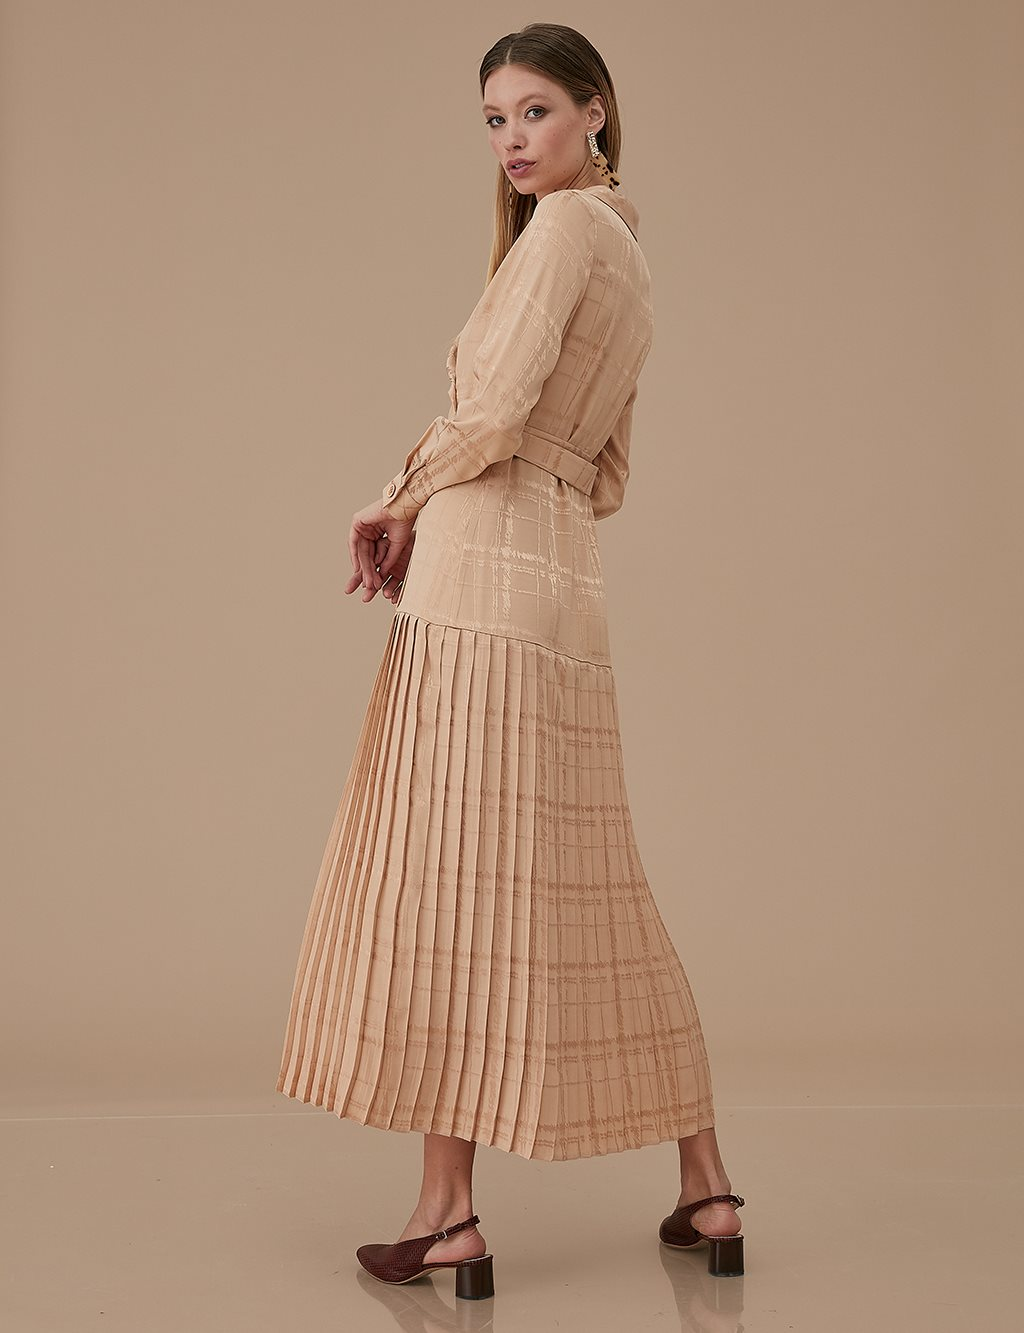 Jacquard Pleated Dress A9 23033 Beige